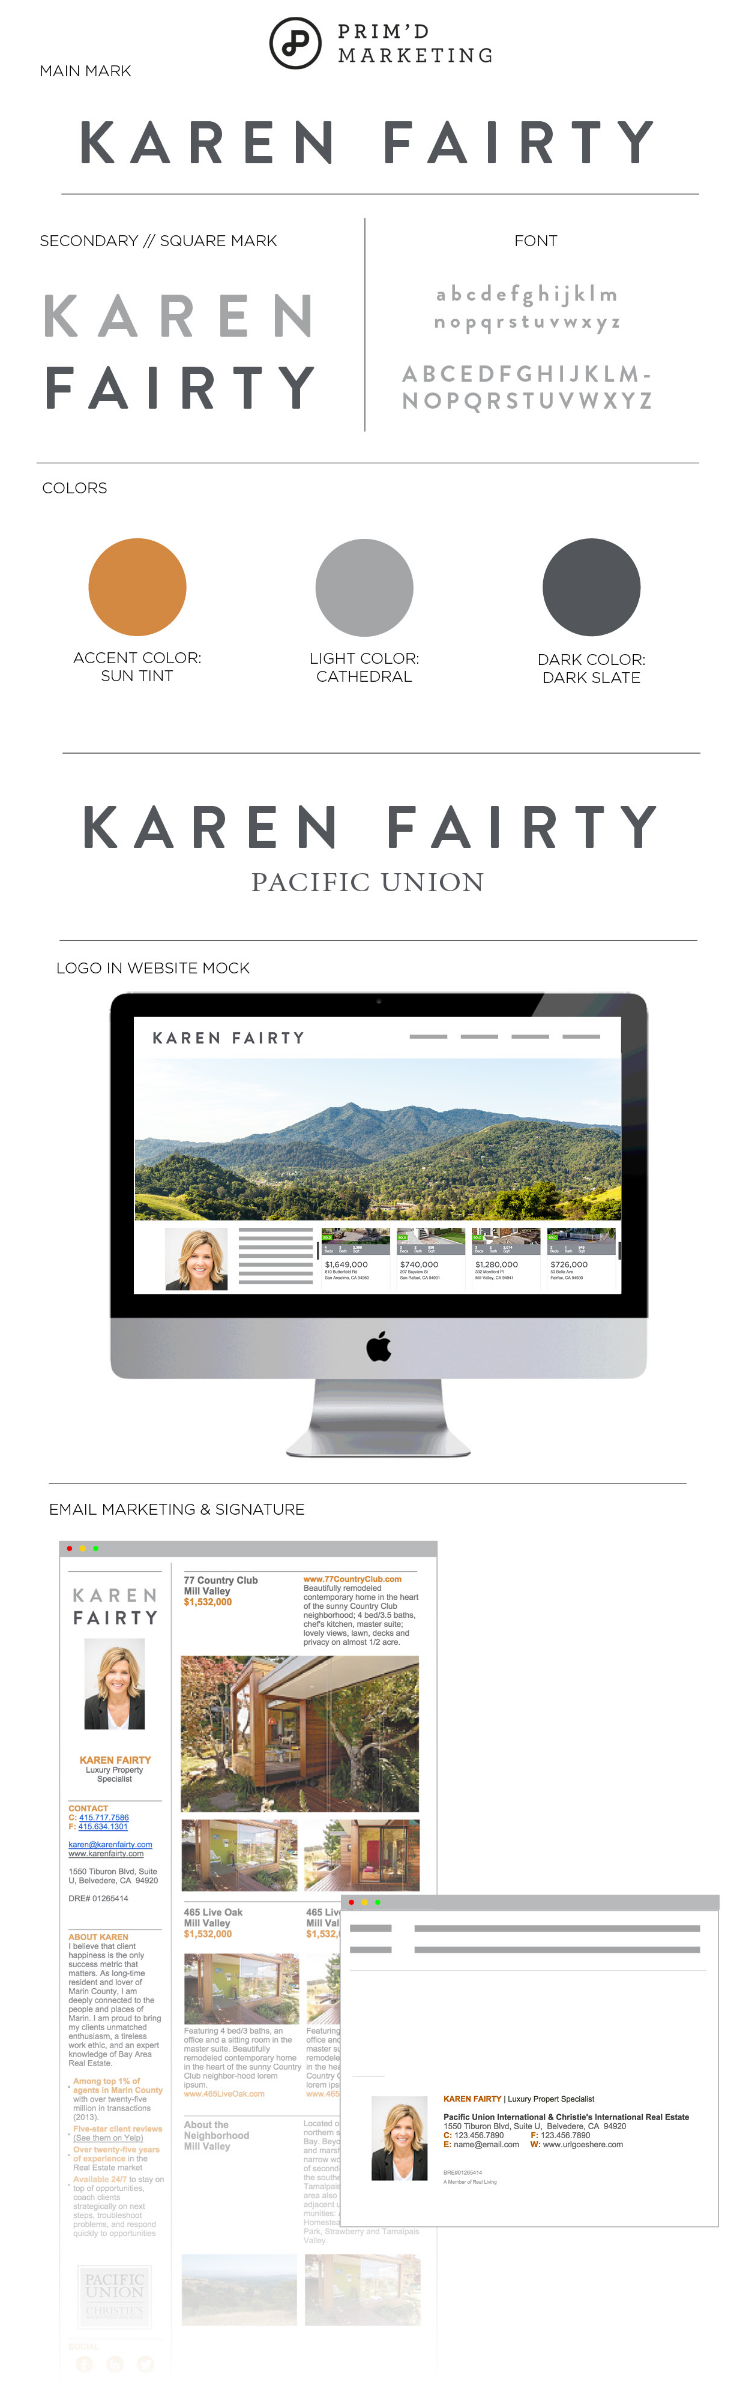 Primd Marketing - Case Study - Karen Fairty Branding